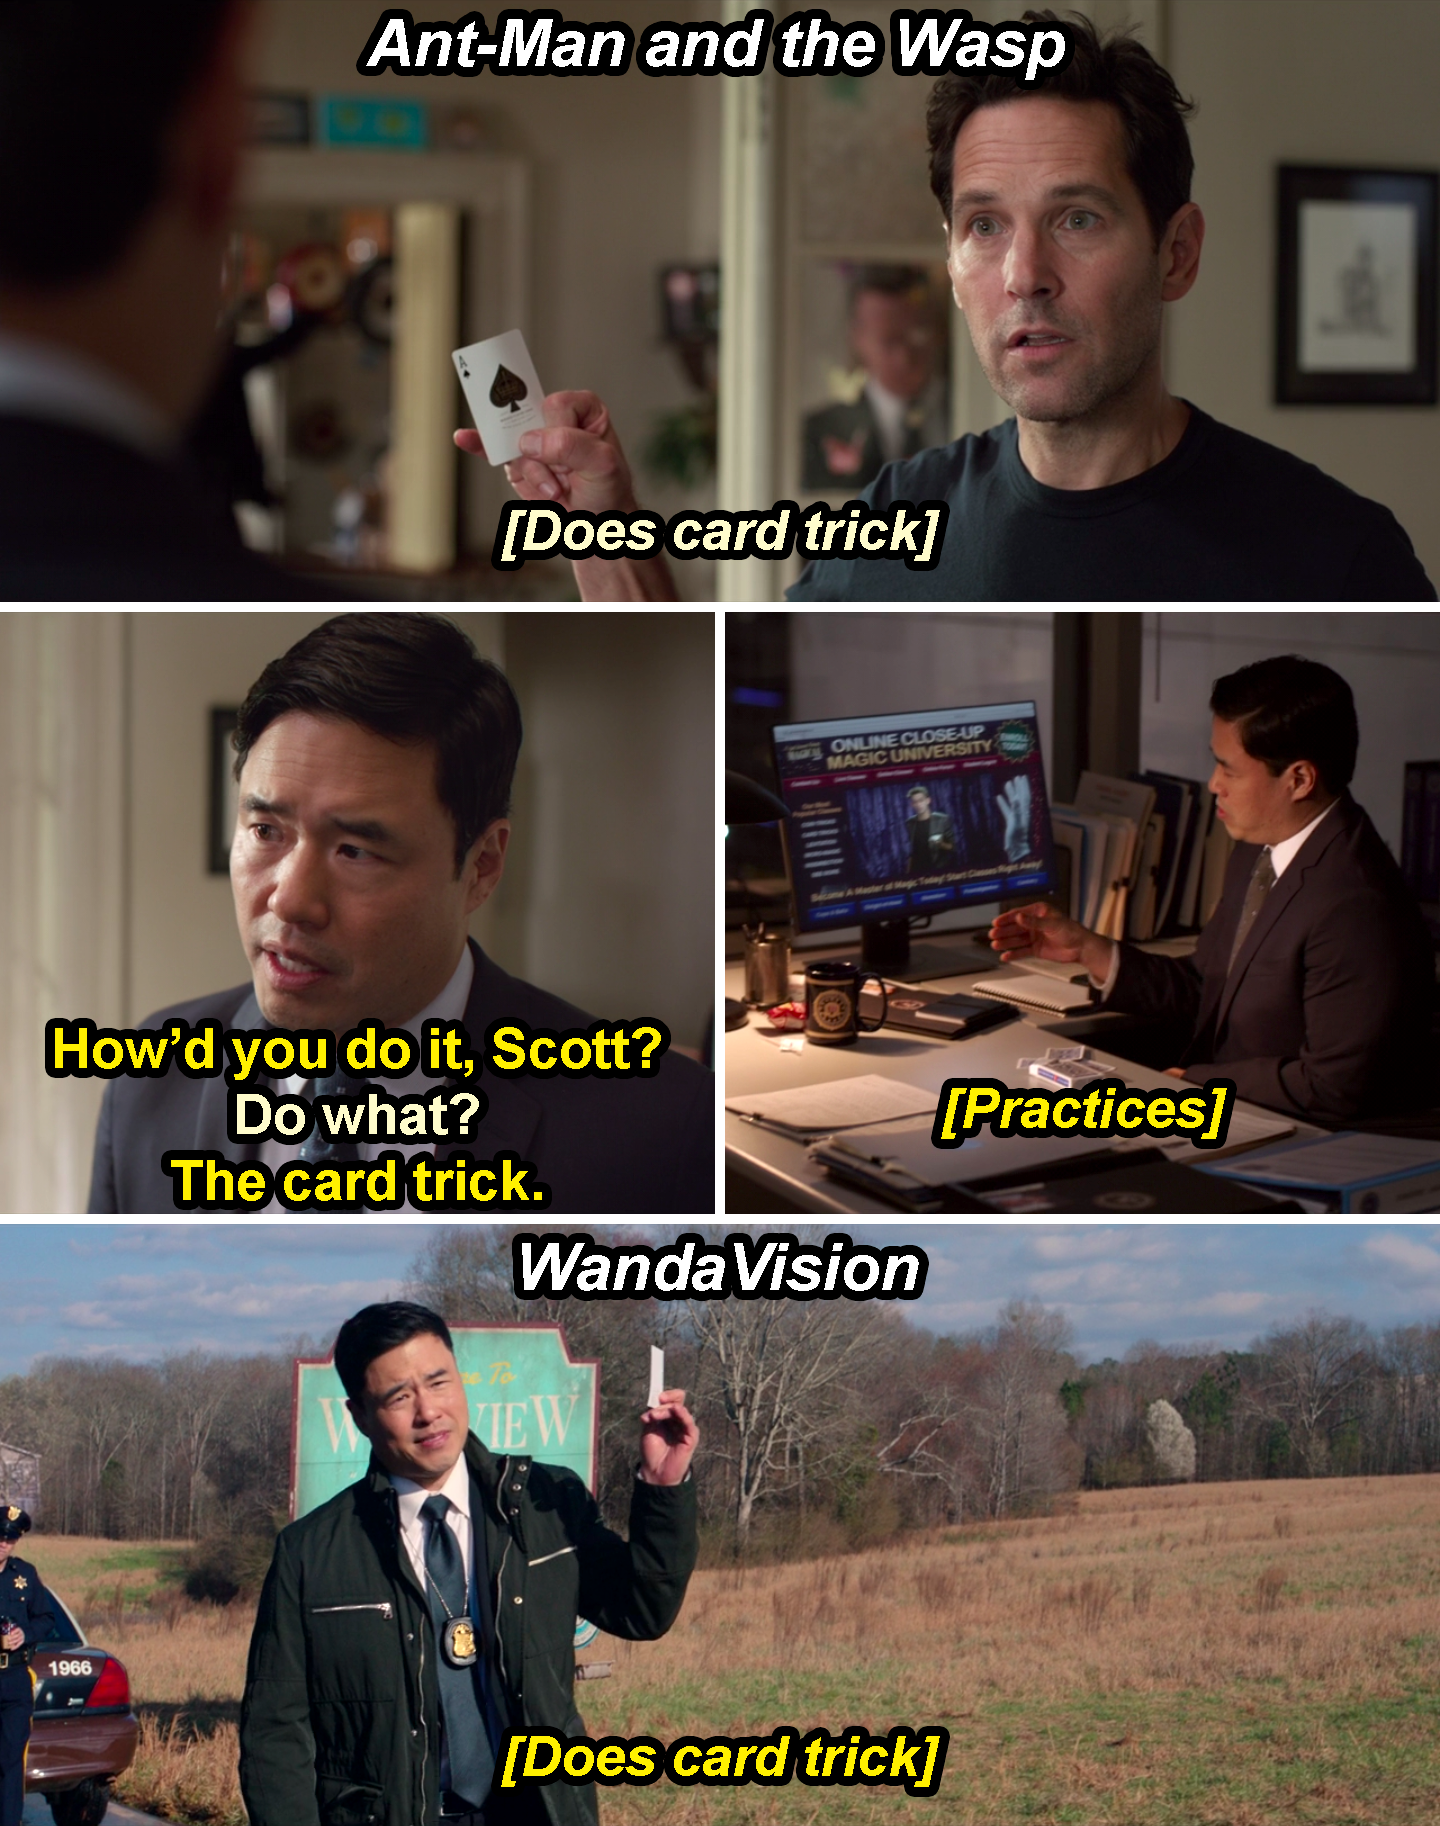 Jimmy Woo asking Scott how he did a card trick and practicing the trick in Ant-Man and the Wasp and then doing the card trick in WandaVision